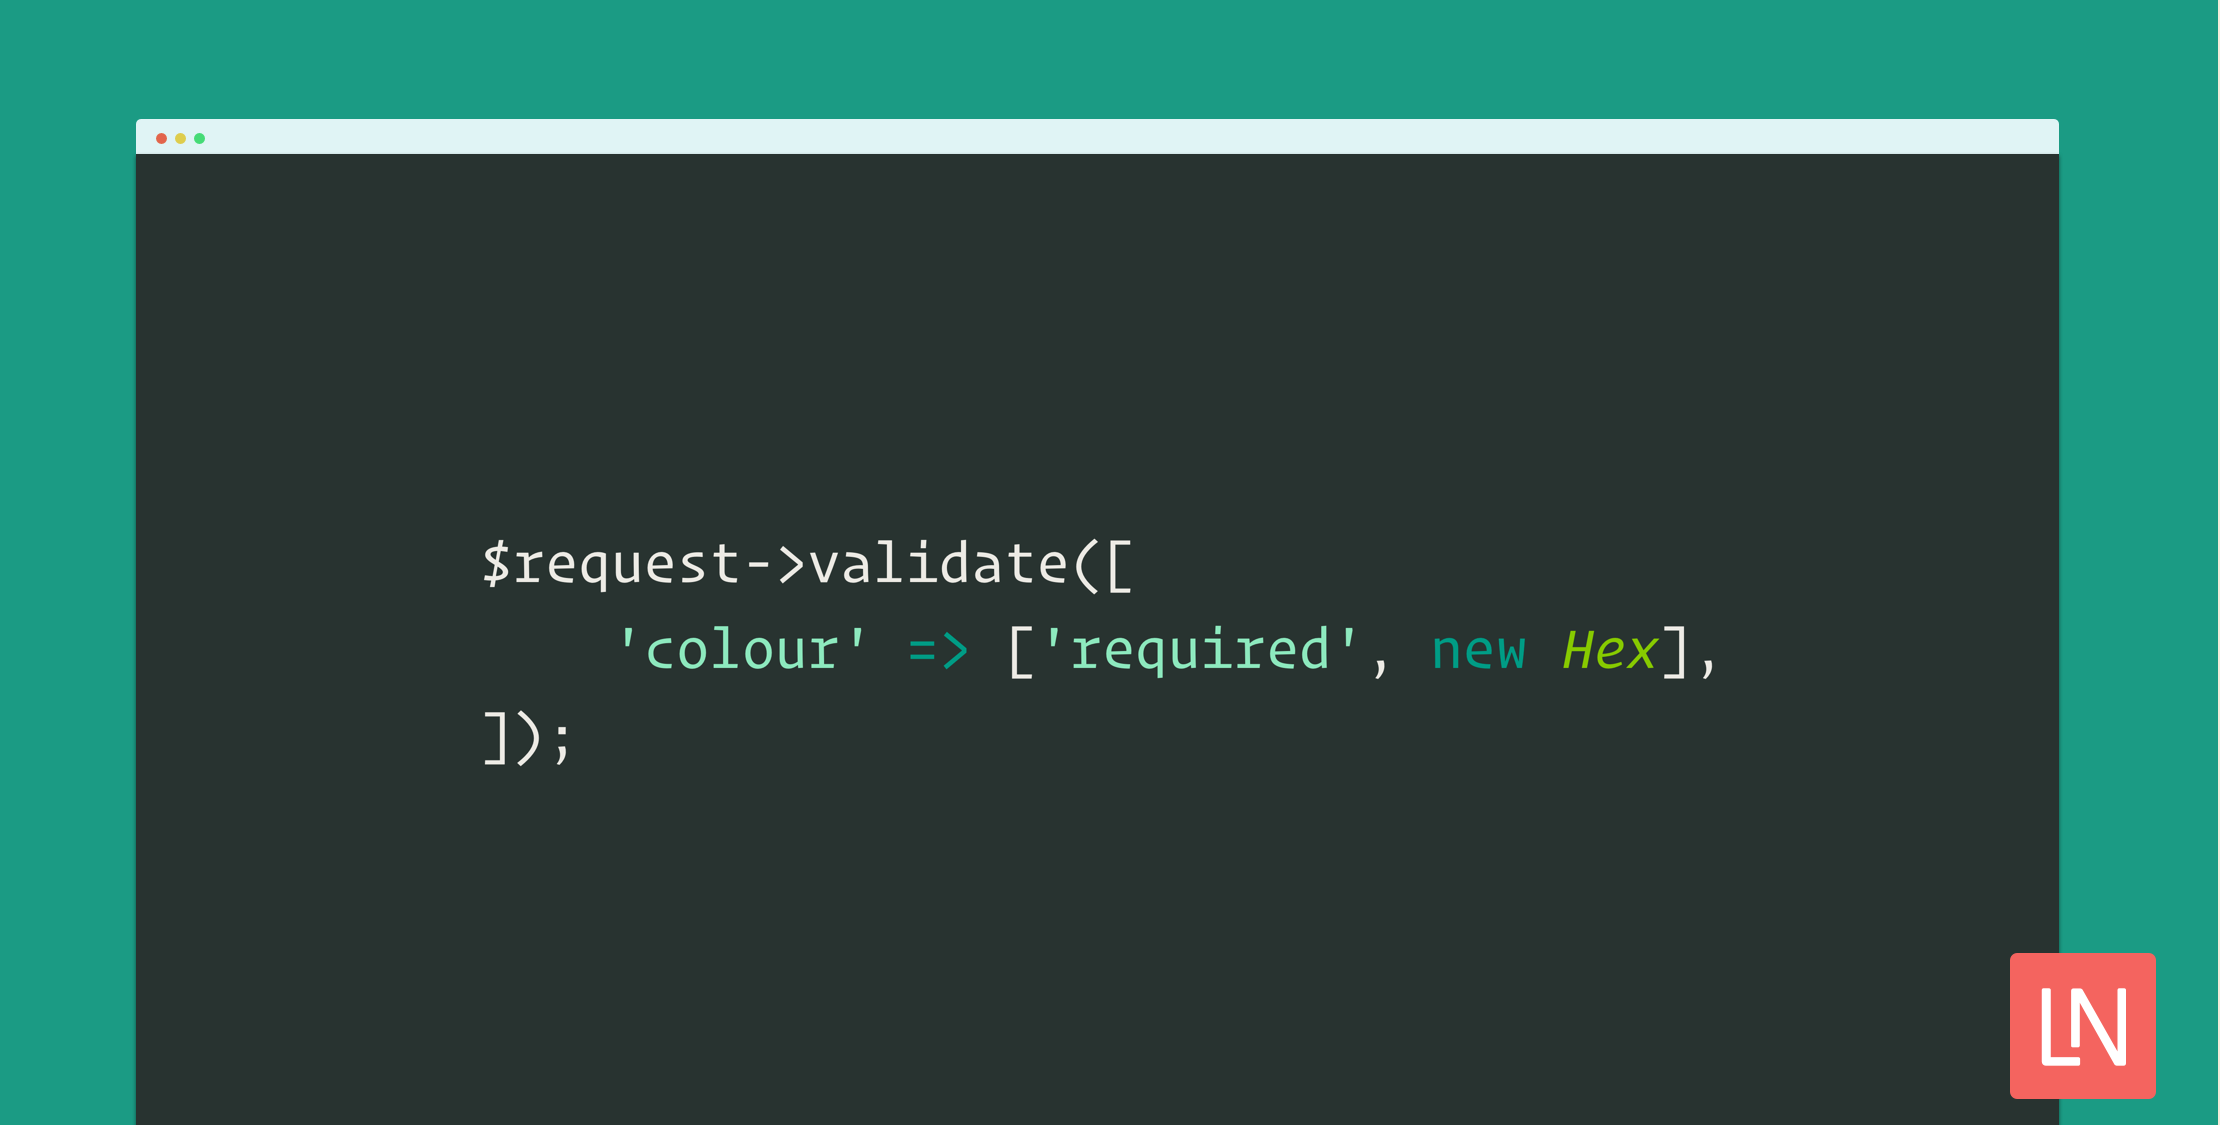 laravel-validation-packages-featured.png